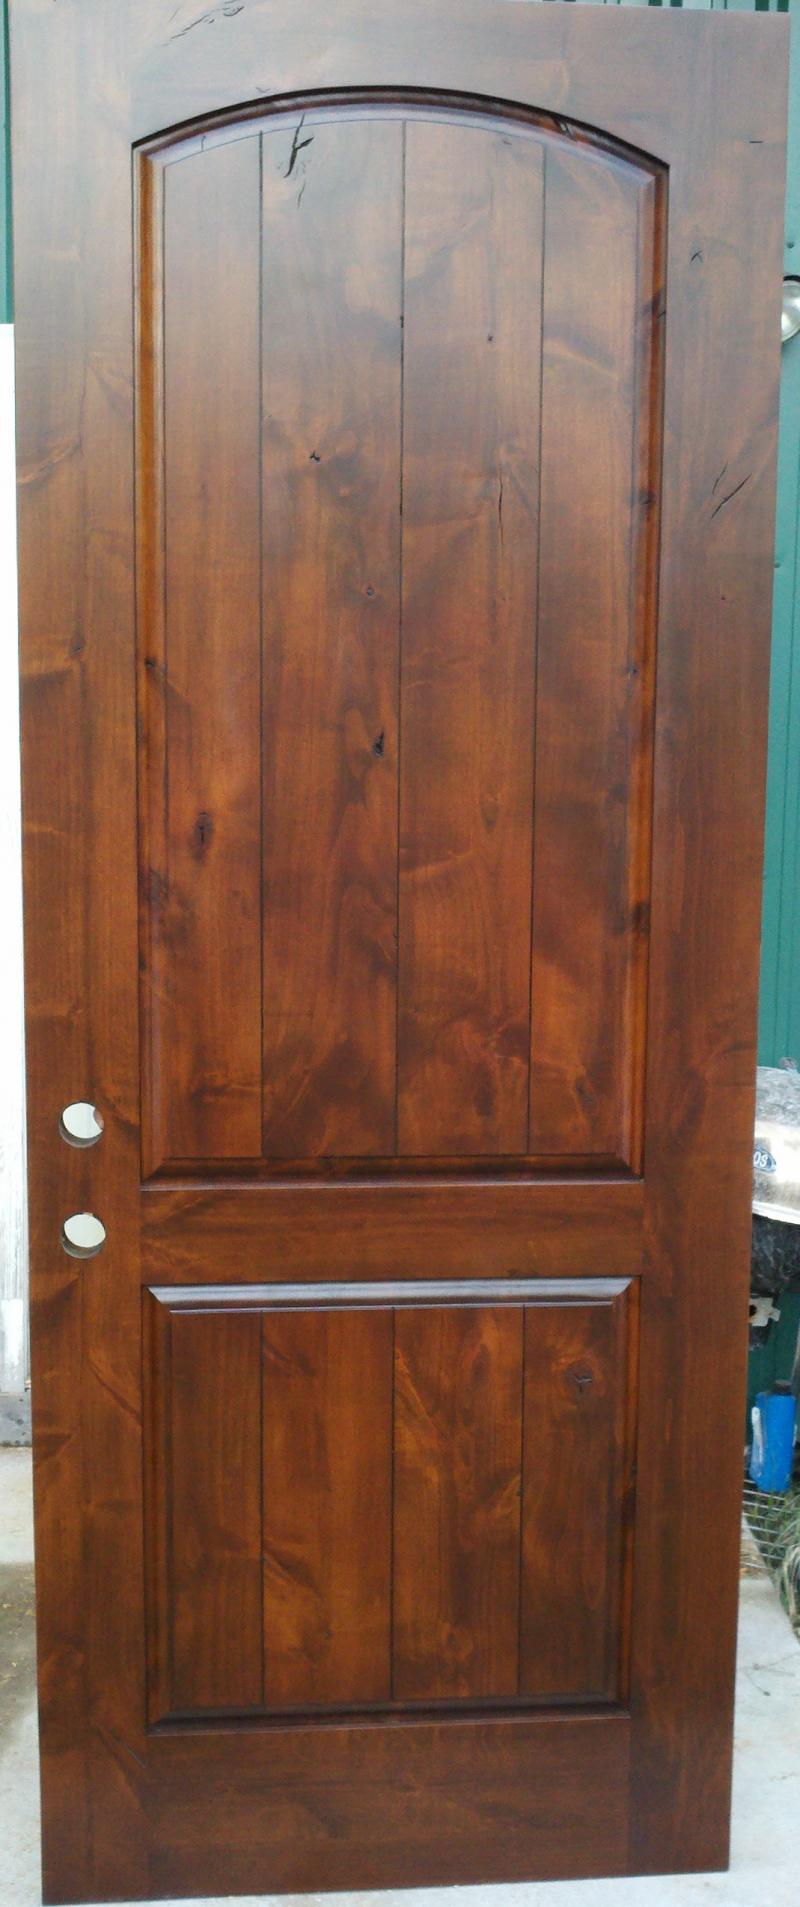 Knotty alder arch top rail raised panel door.